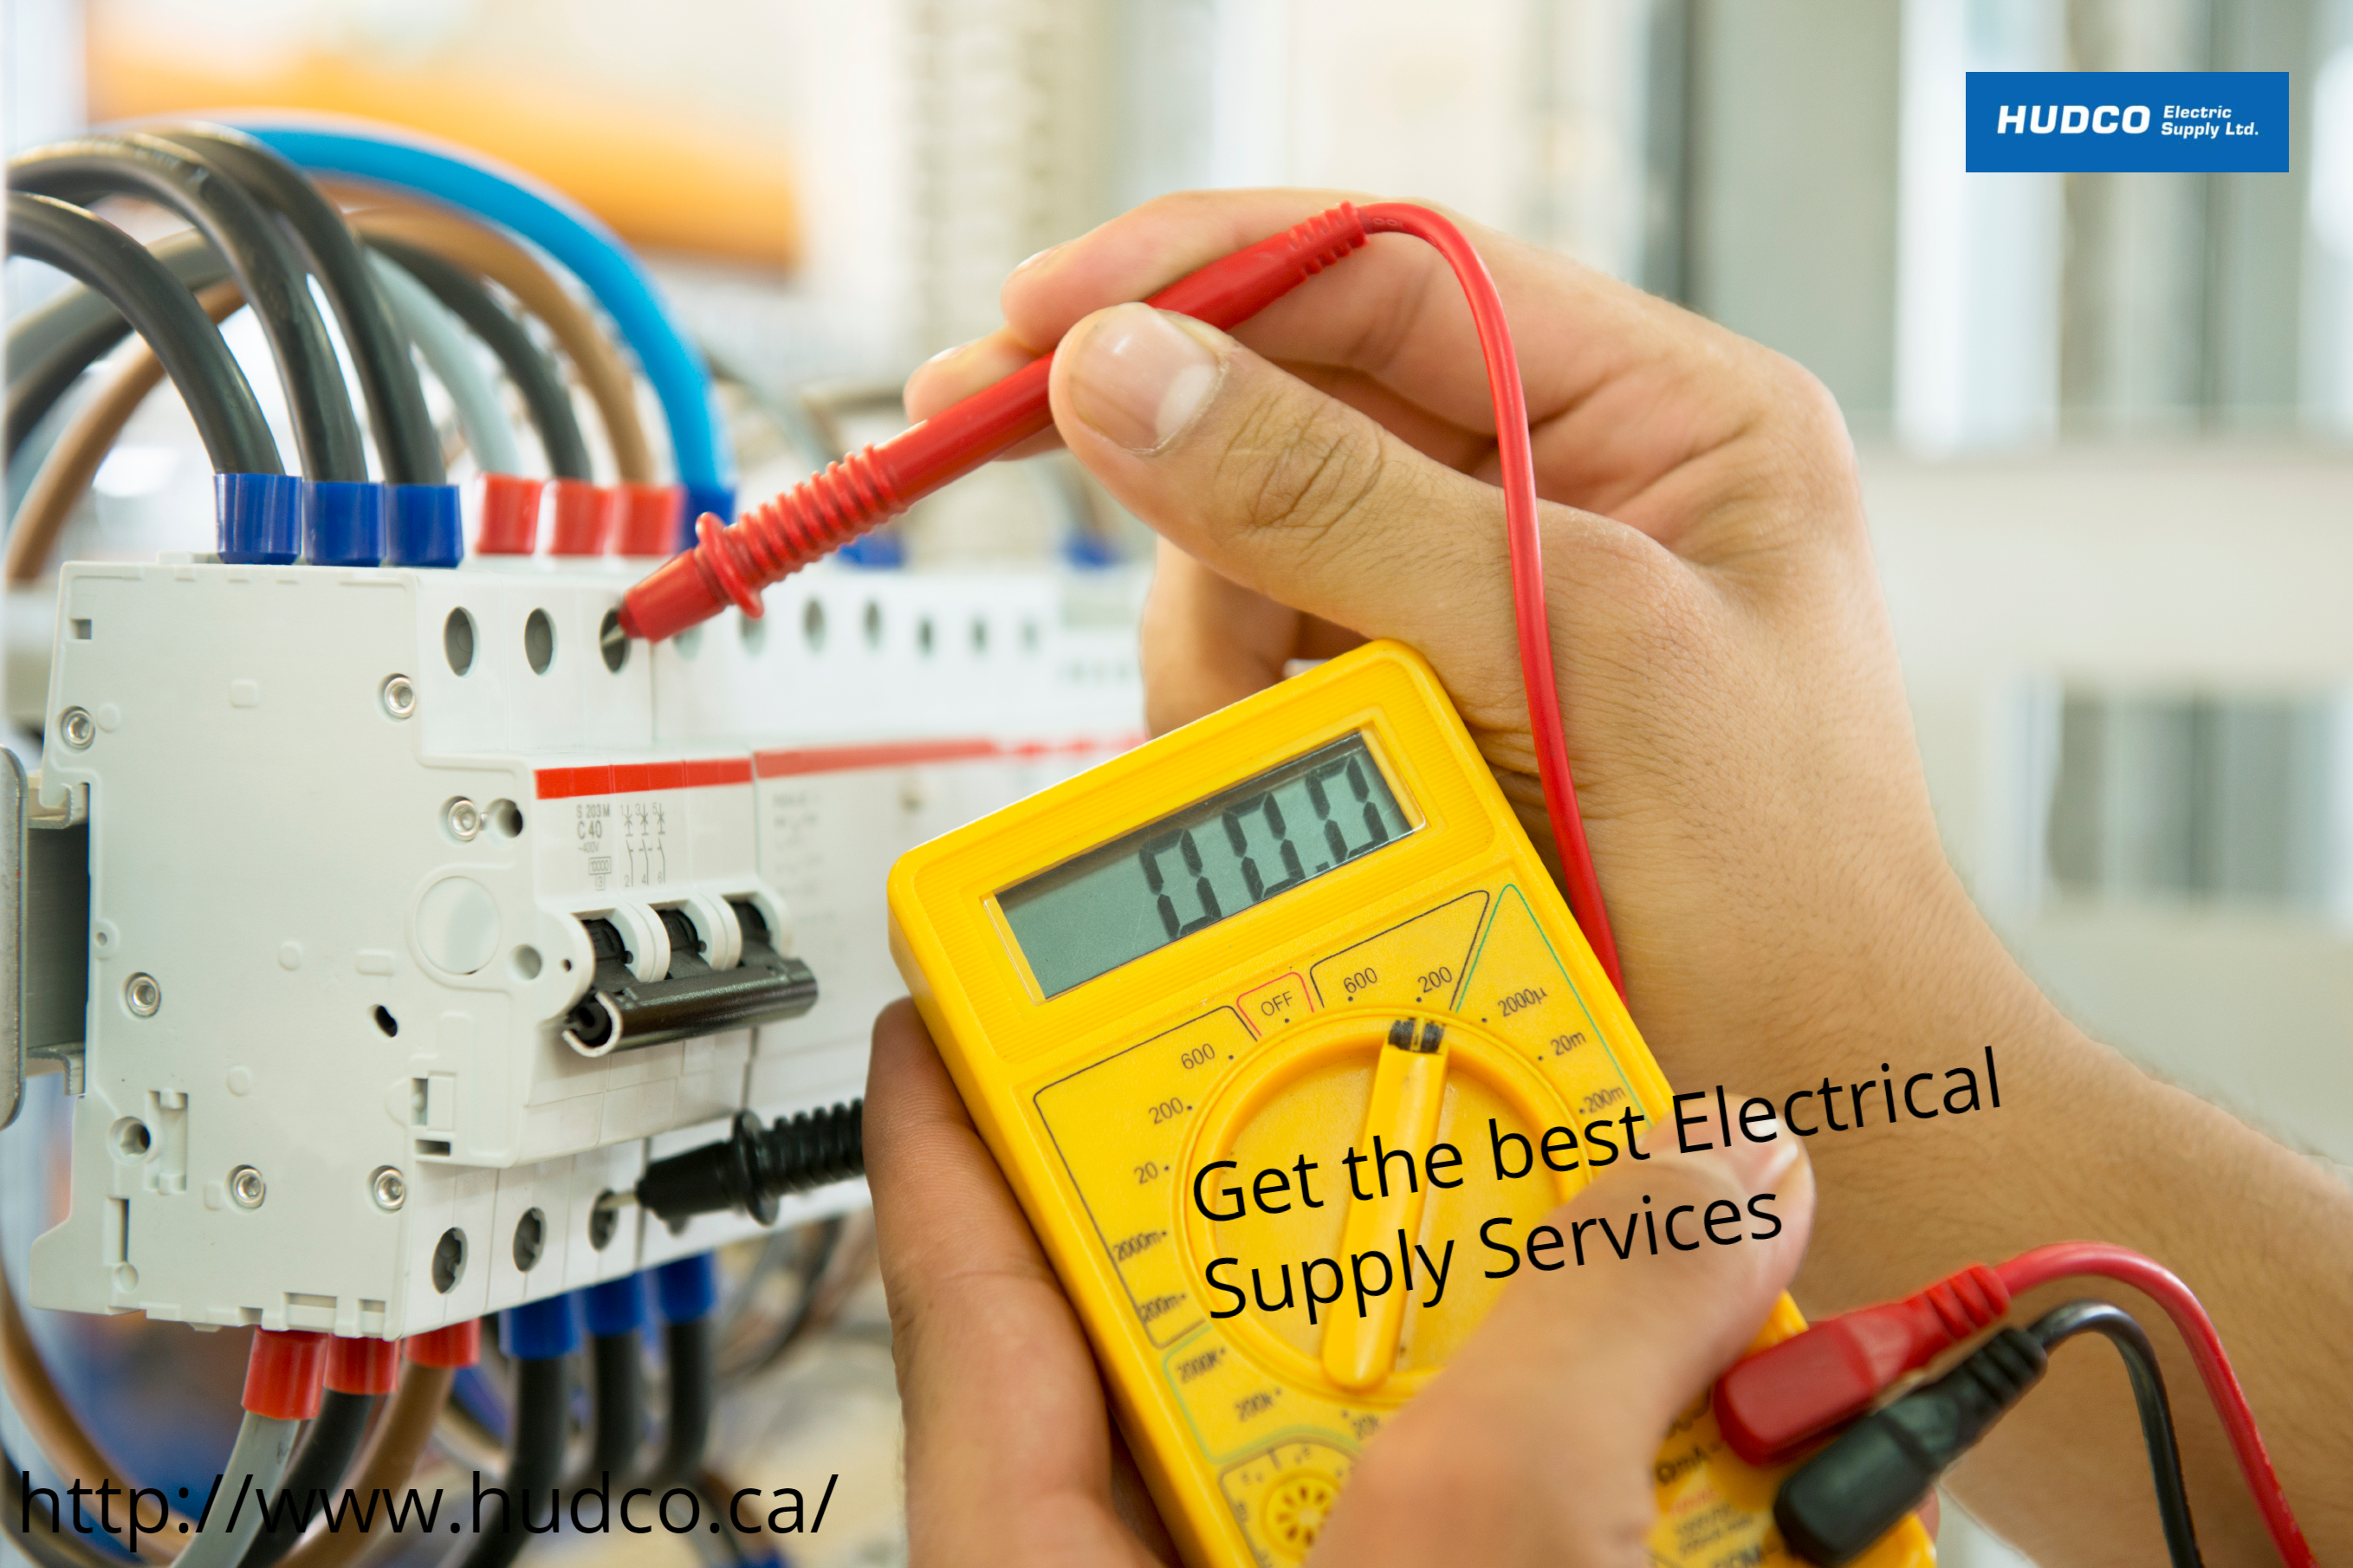 Hudco Electrical Suppliers Get The Best Electric Services And